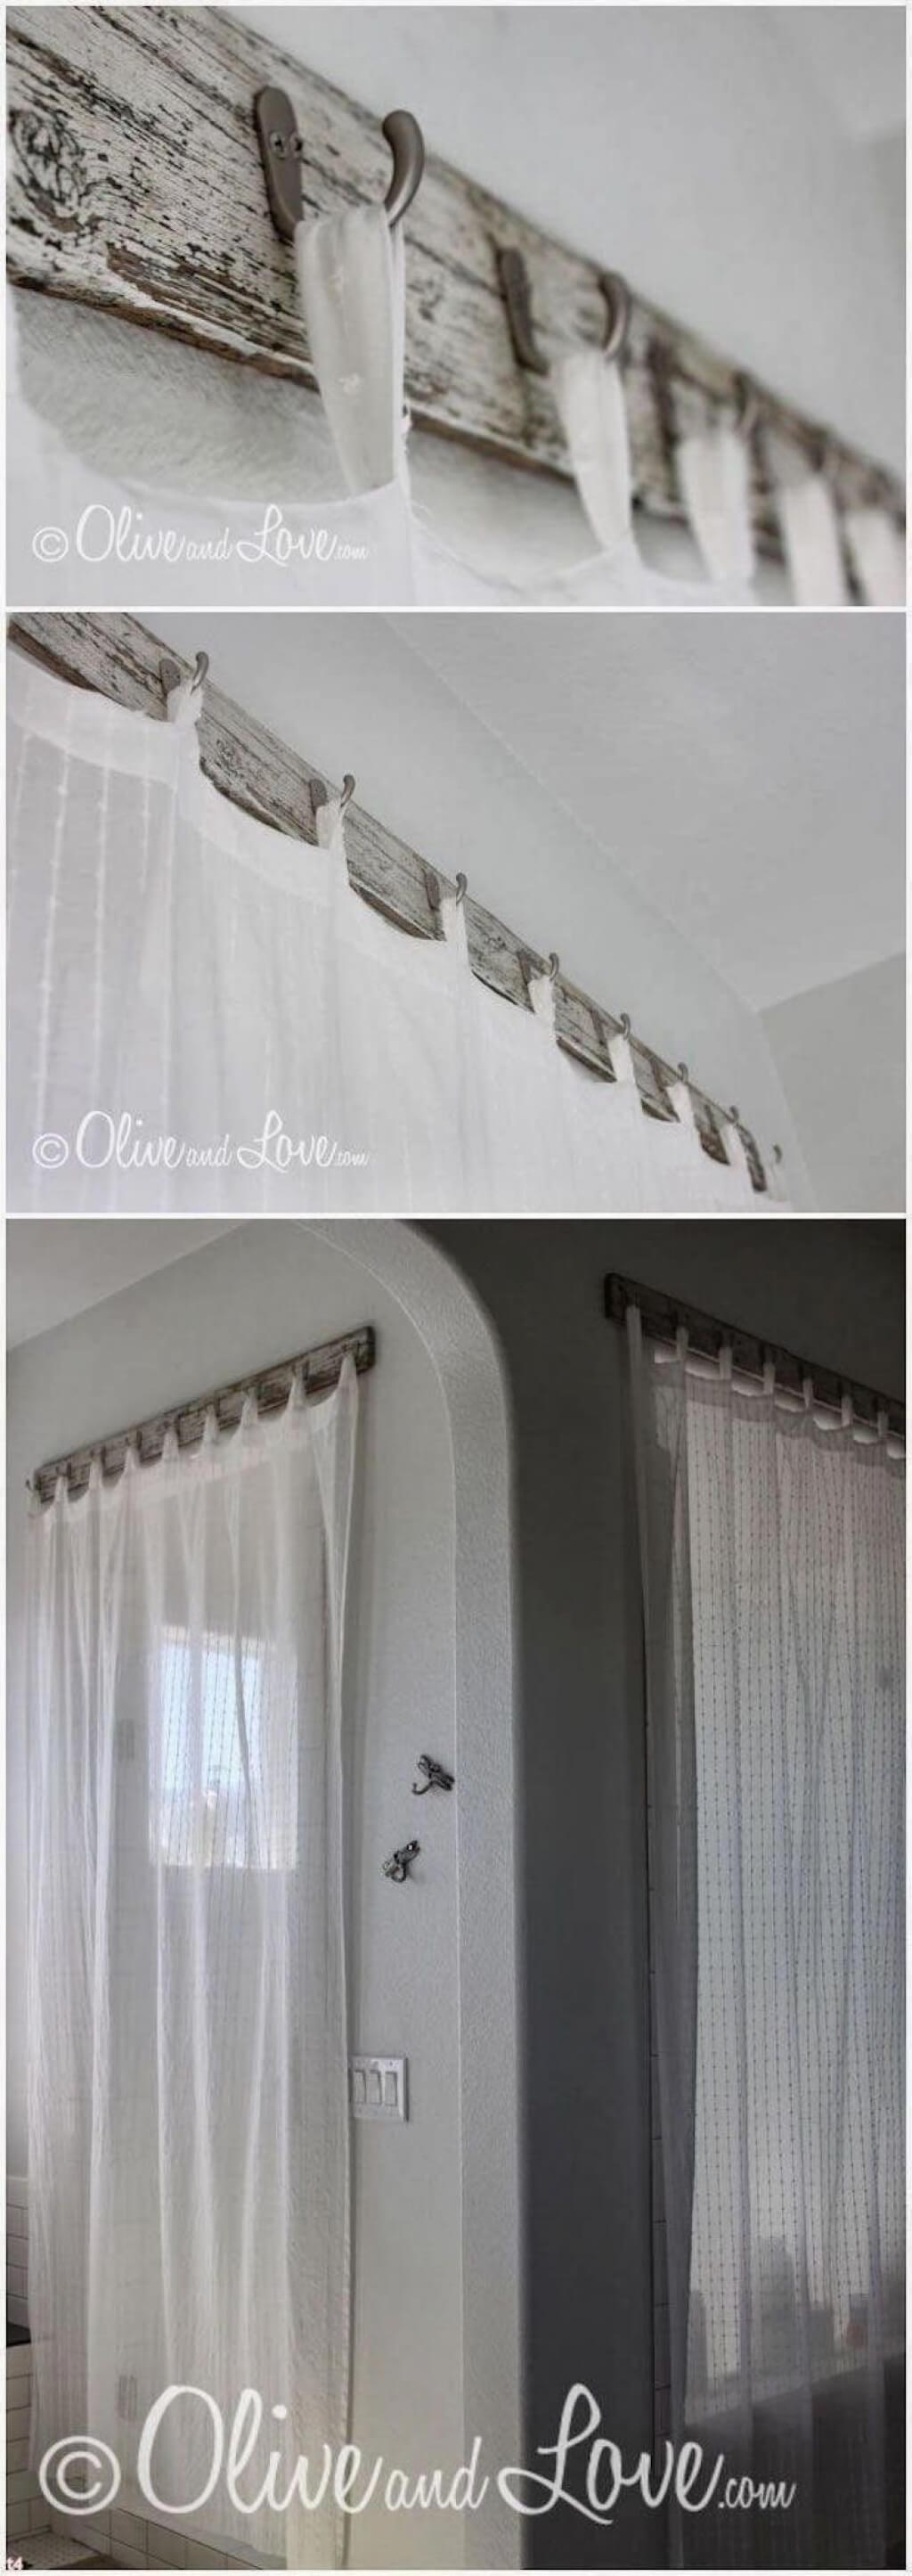 Hook, Line, And Sinker Curtain Beams